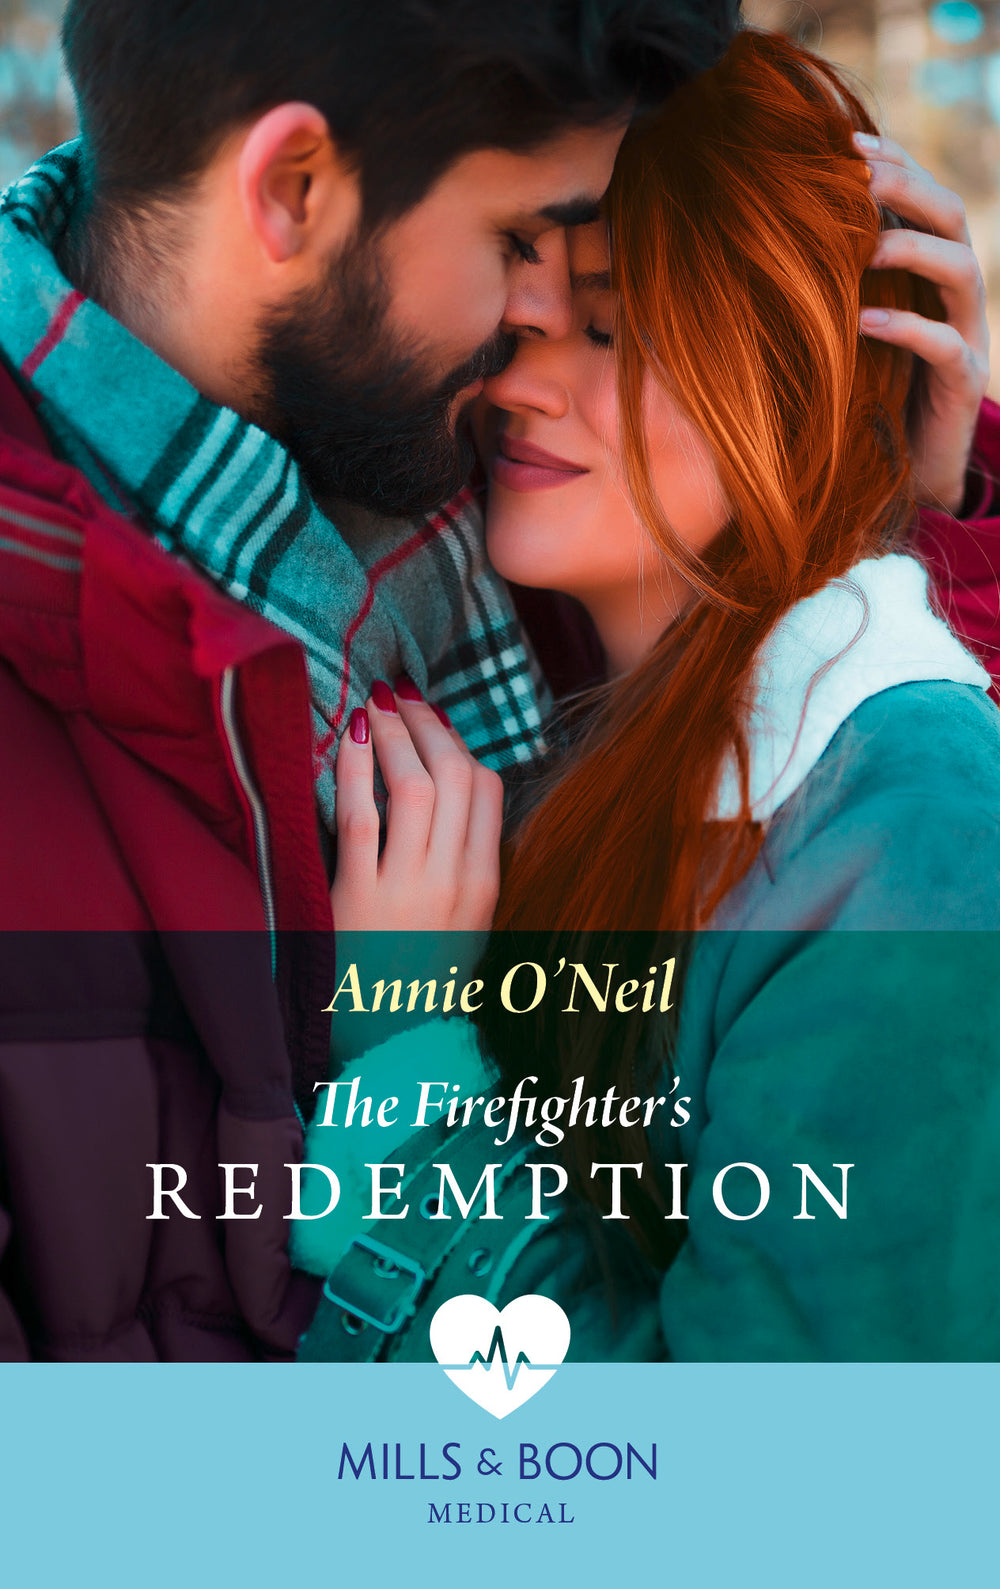 The Firefighter's Redemption - Chapter 8